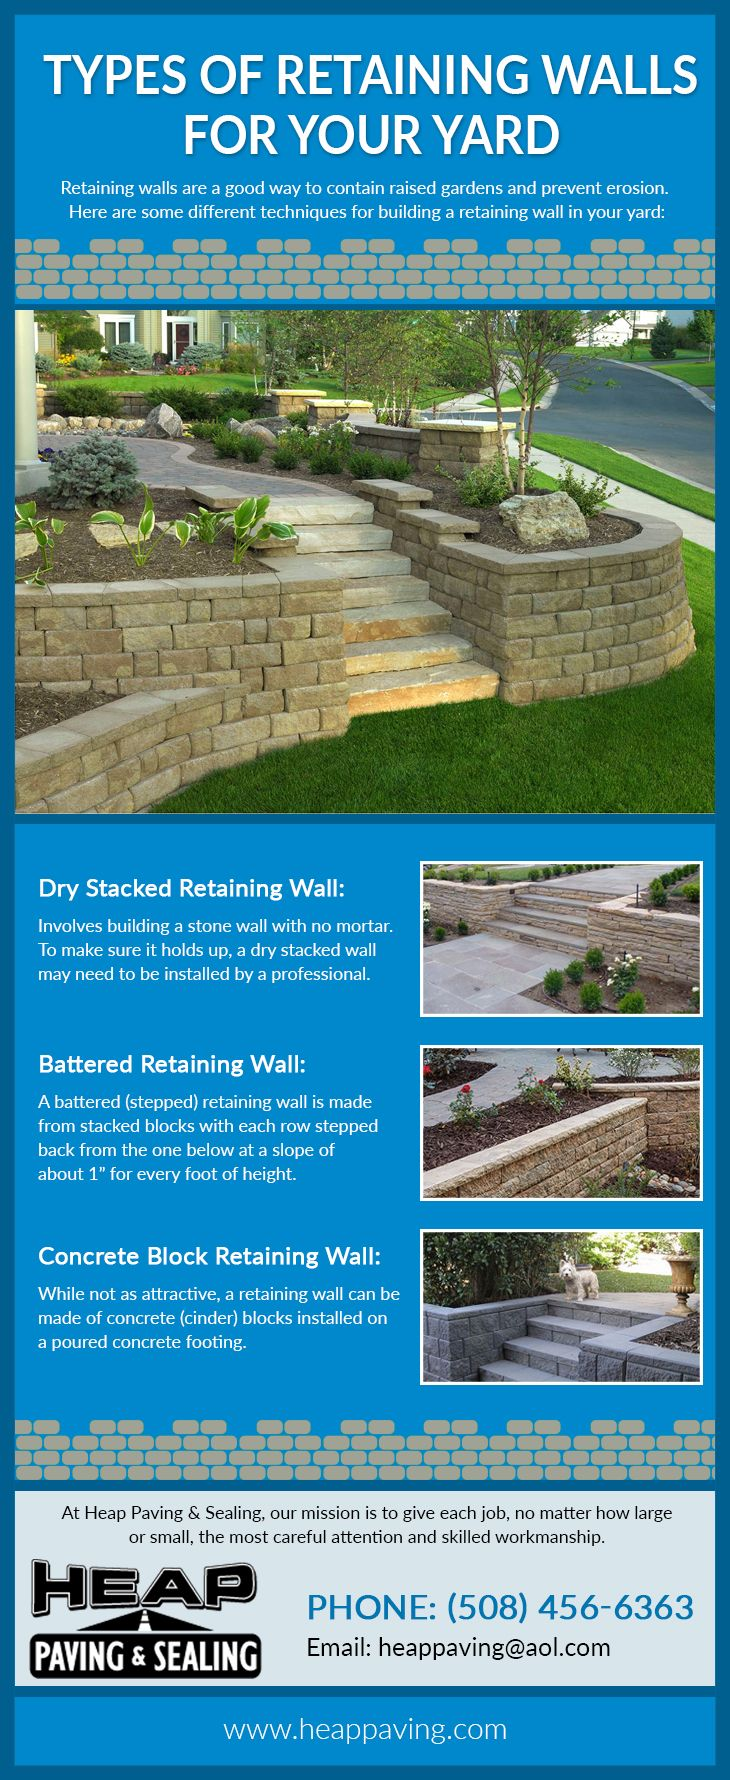 A Retaining Wall Is A Structure That Retains Any Material And Prevents It From Eroding Or Asphalt Paving Contractors Paving Contractors Types Of Retaining Wall